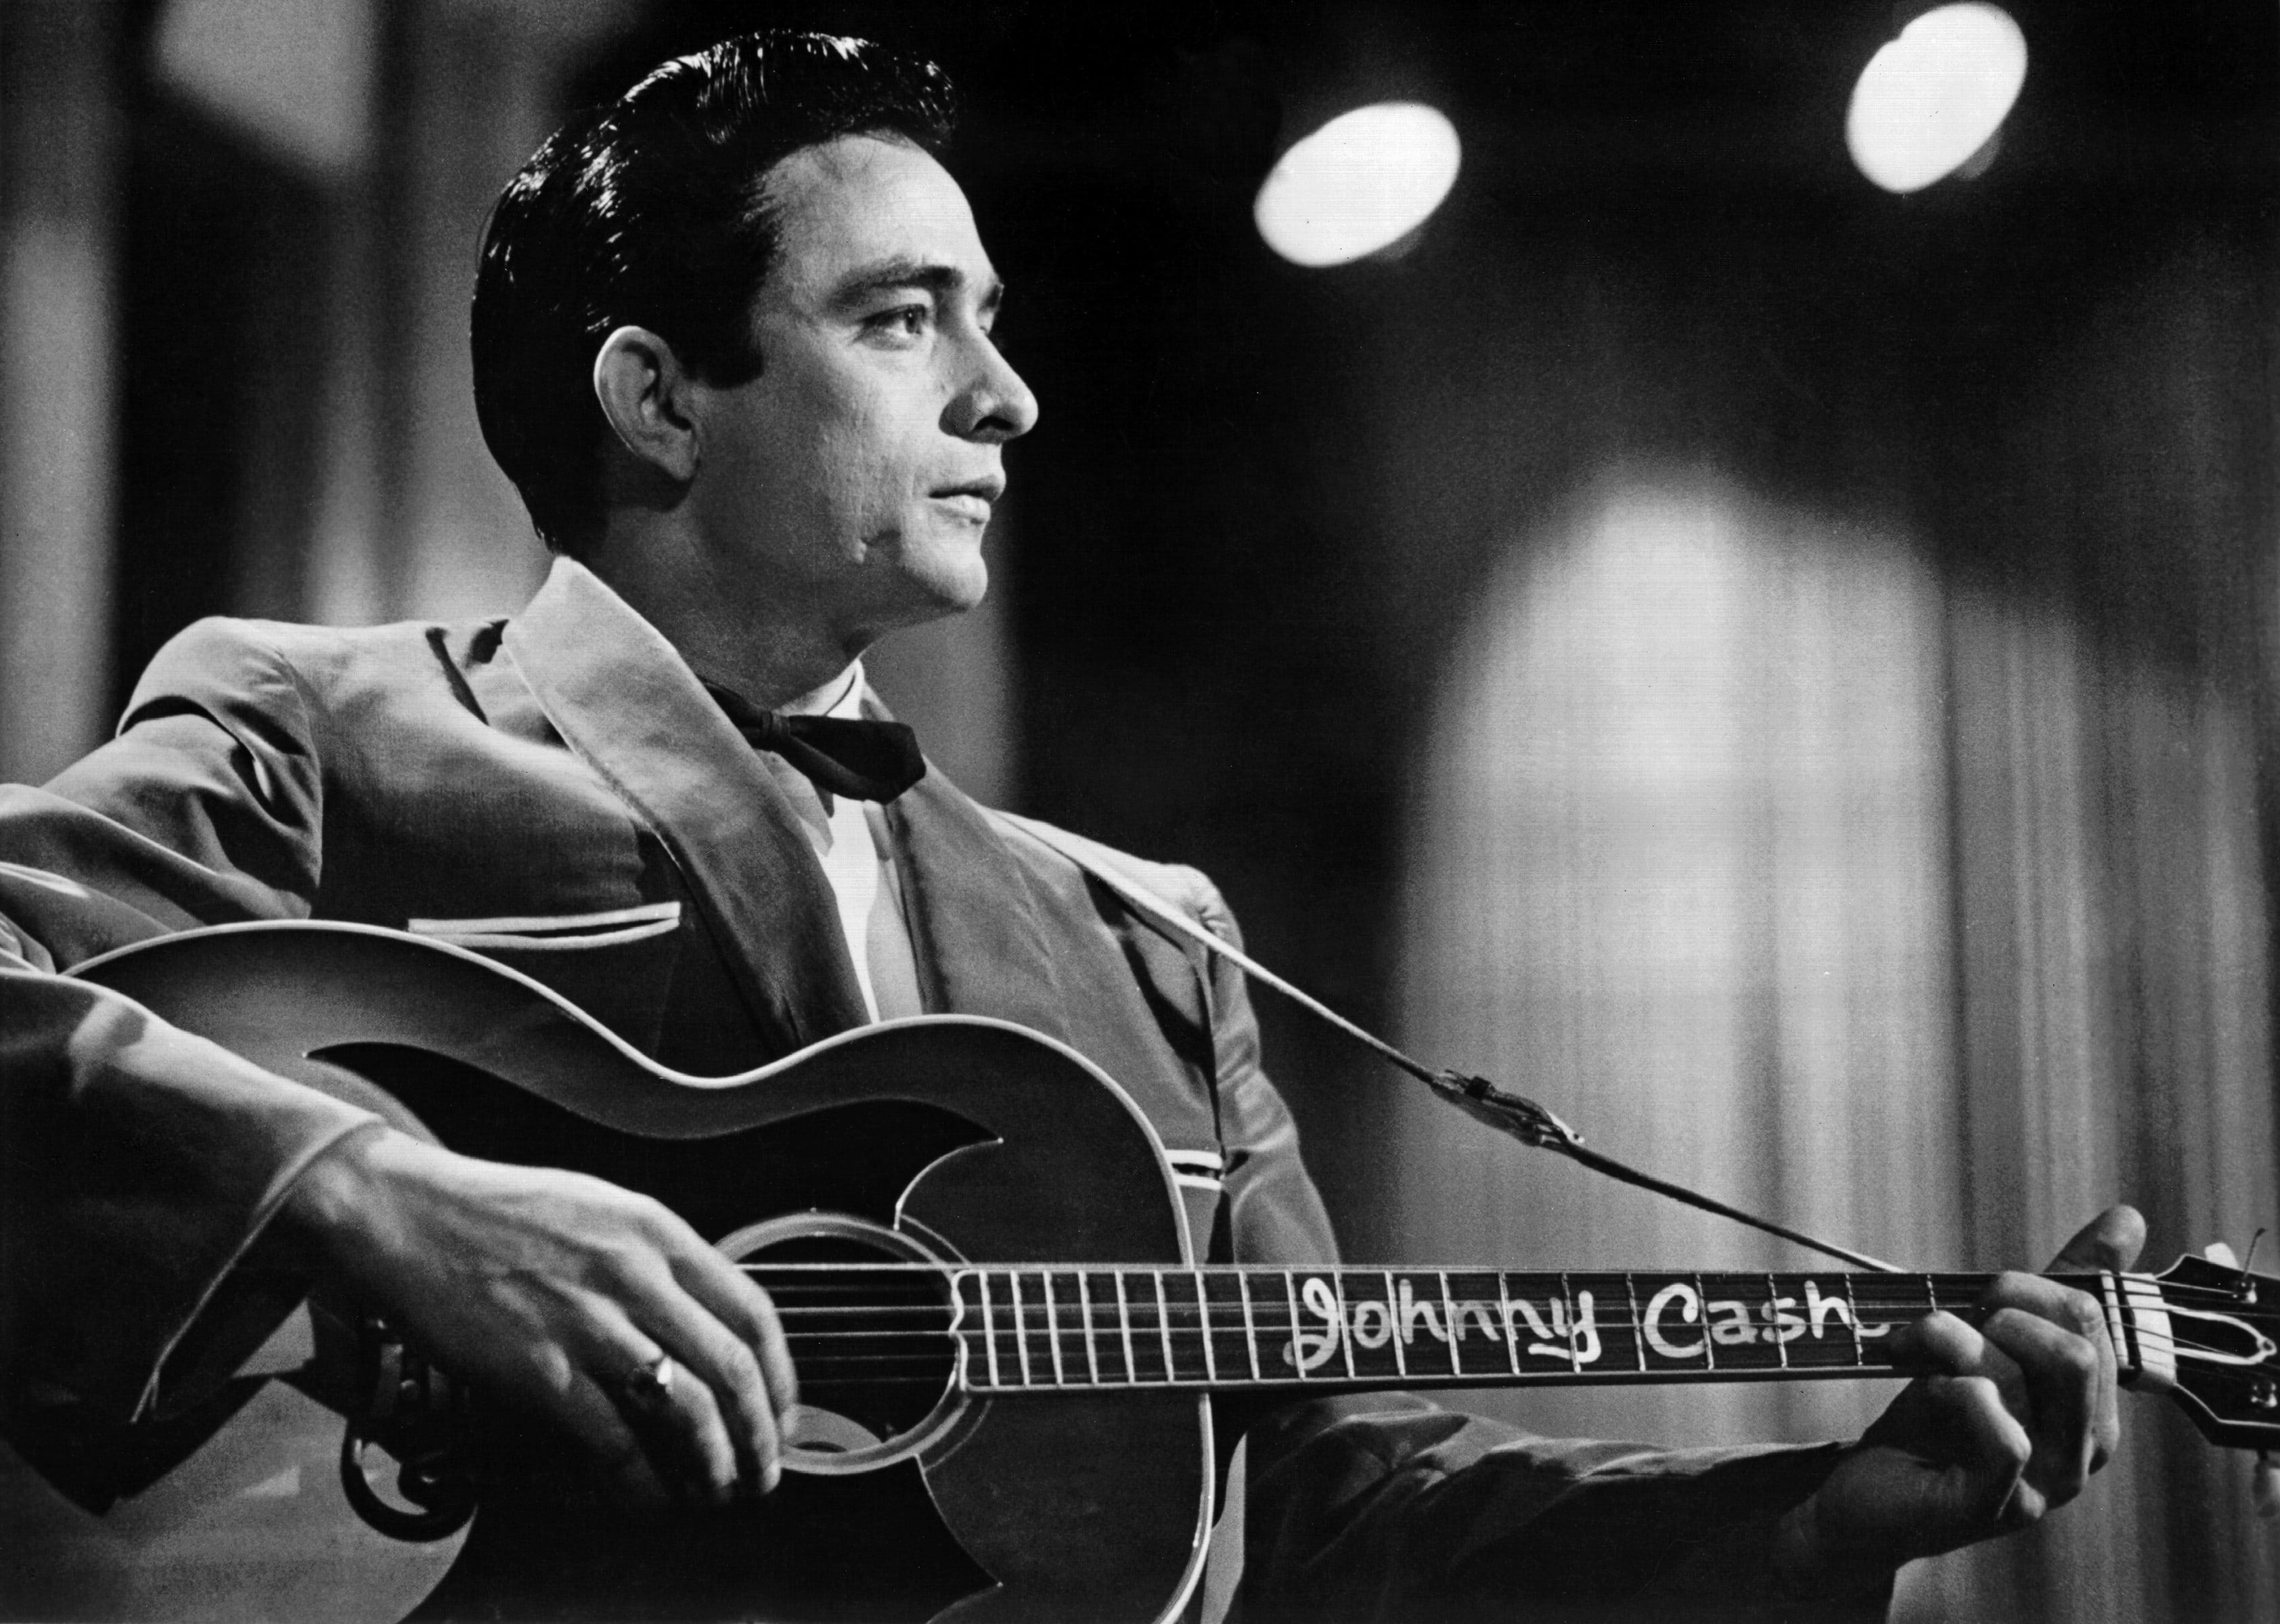 Johnny Cash Hd Wallpapers 7wallpapers Net